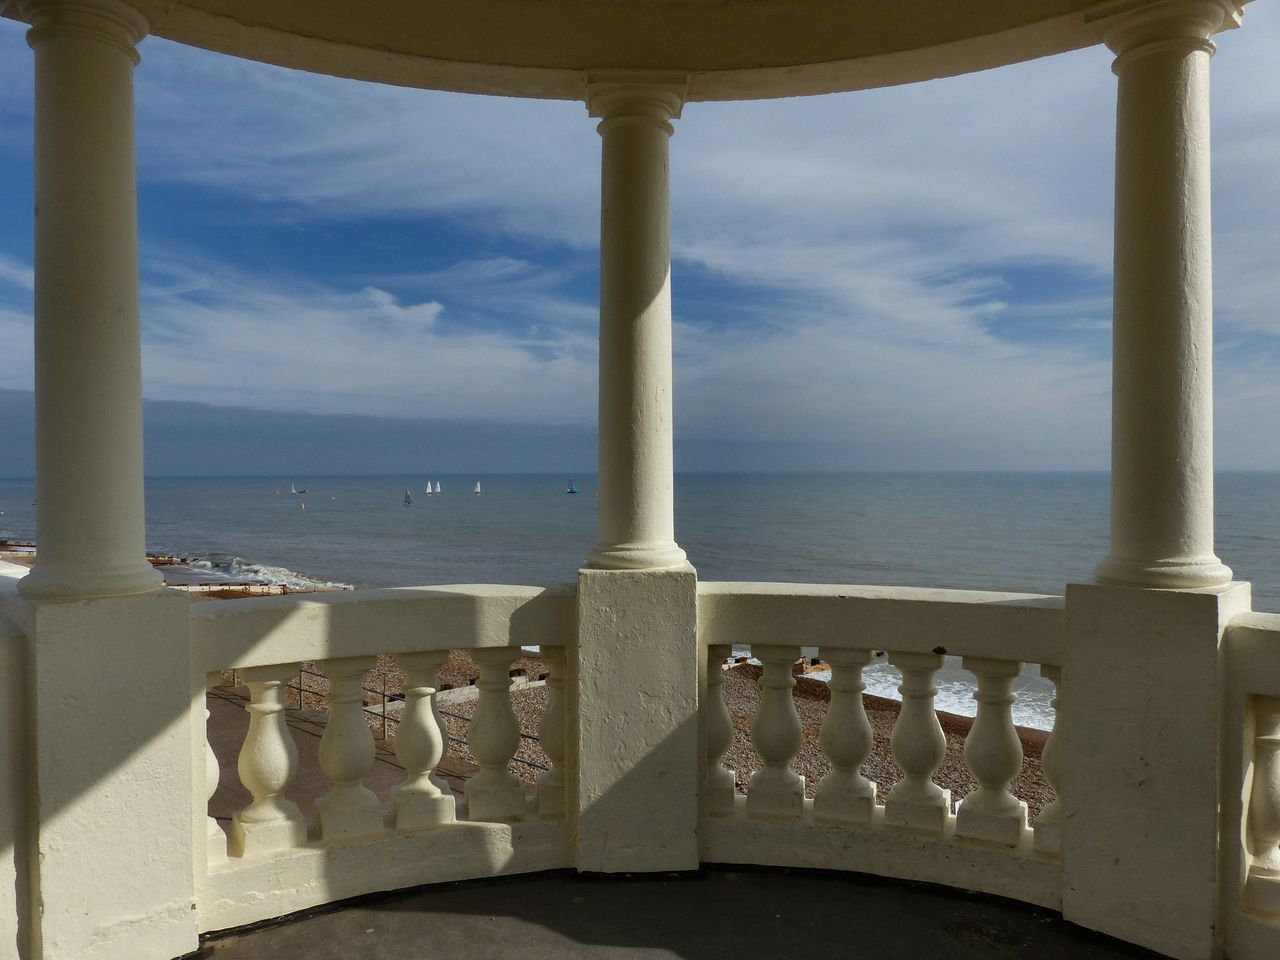 SCENIC VIEW OF SEA AGAINST SKY SEEN FROM RAILING